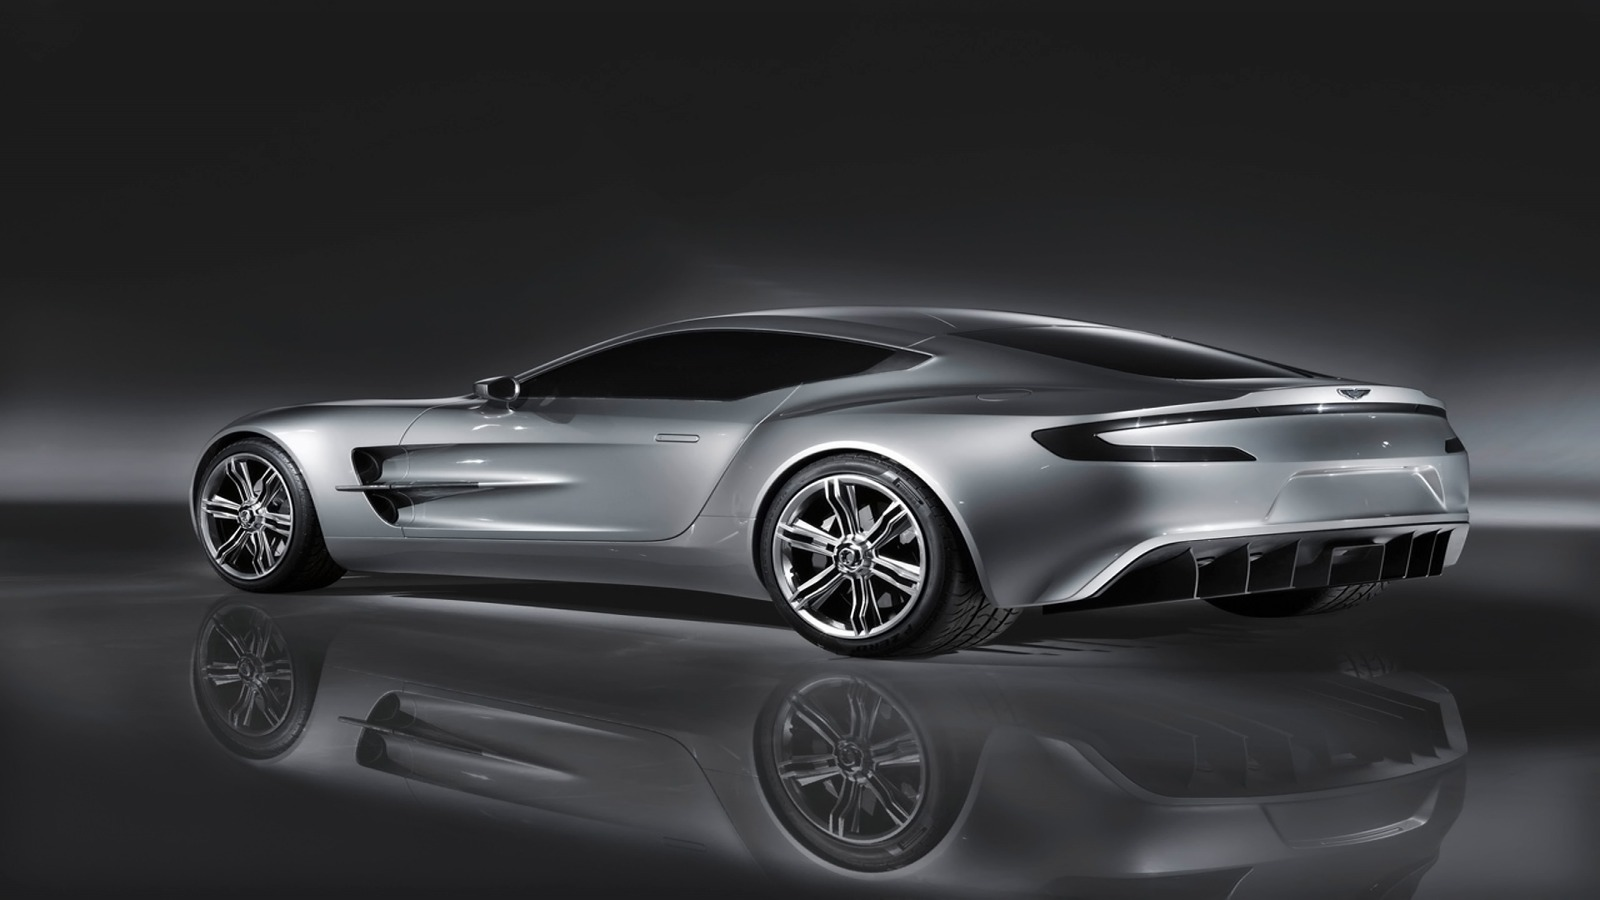 aston martin one 77 wallpaper aston martin cars wallpapers. Cars Review. Best American Auto & Cars Review